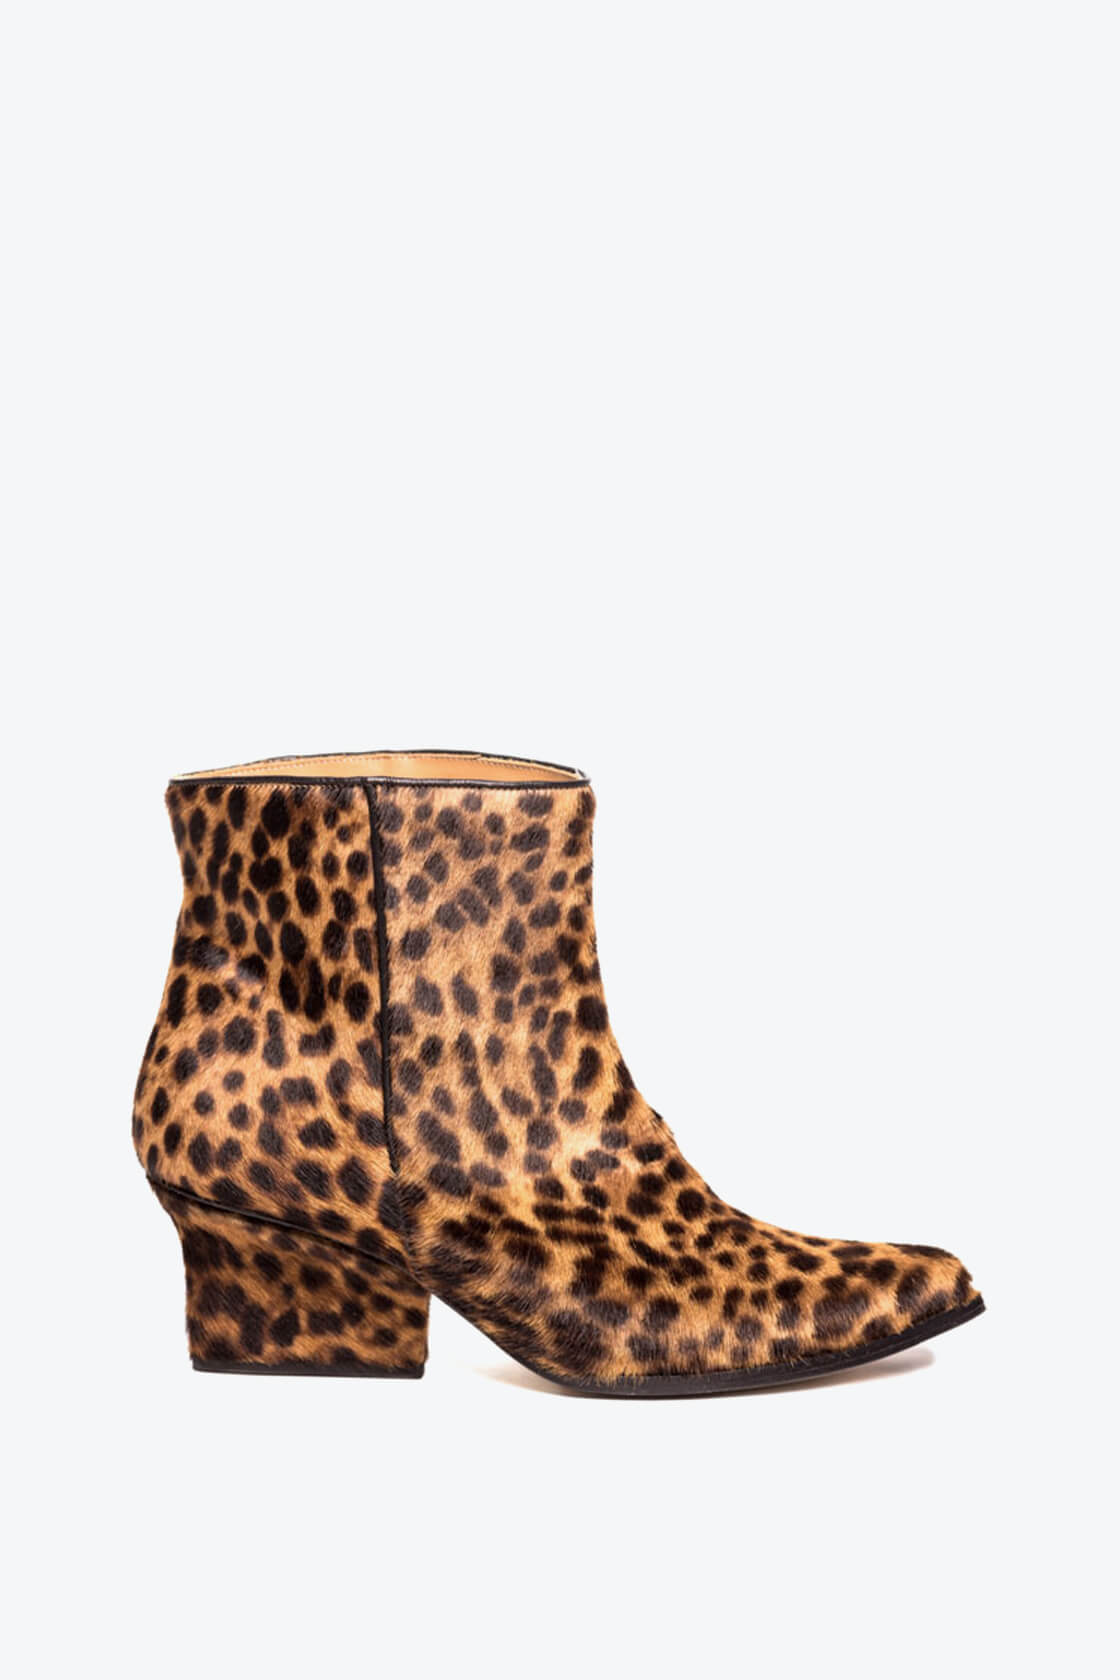 EJK0000083 Denis ankle boots leopard 1